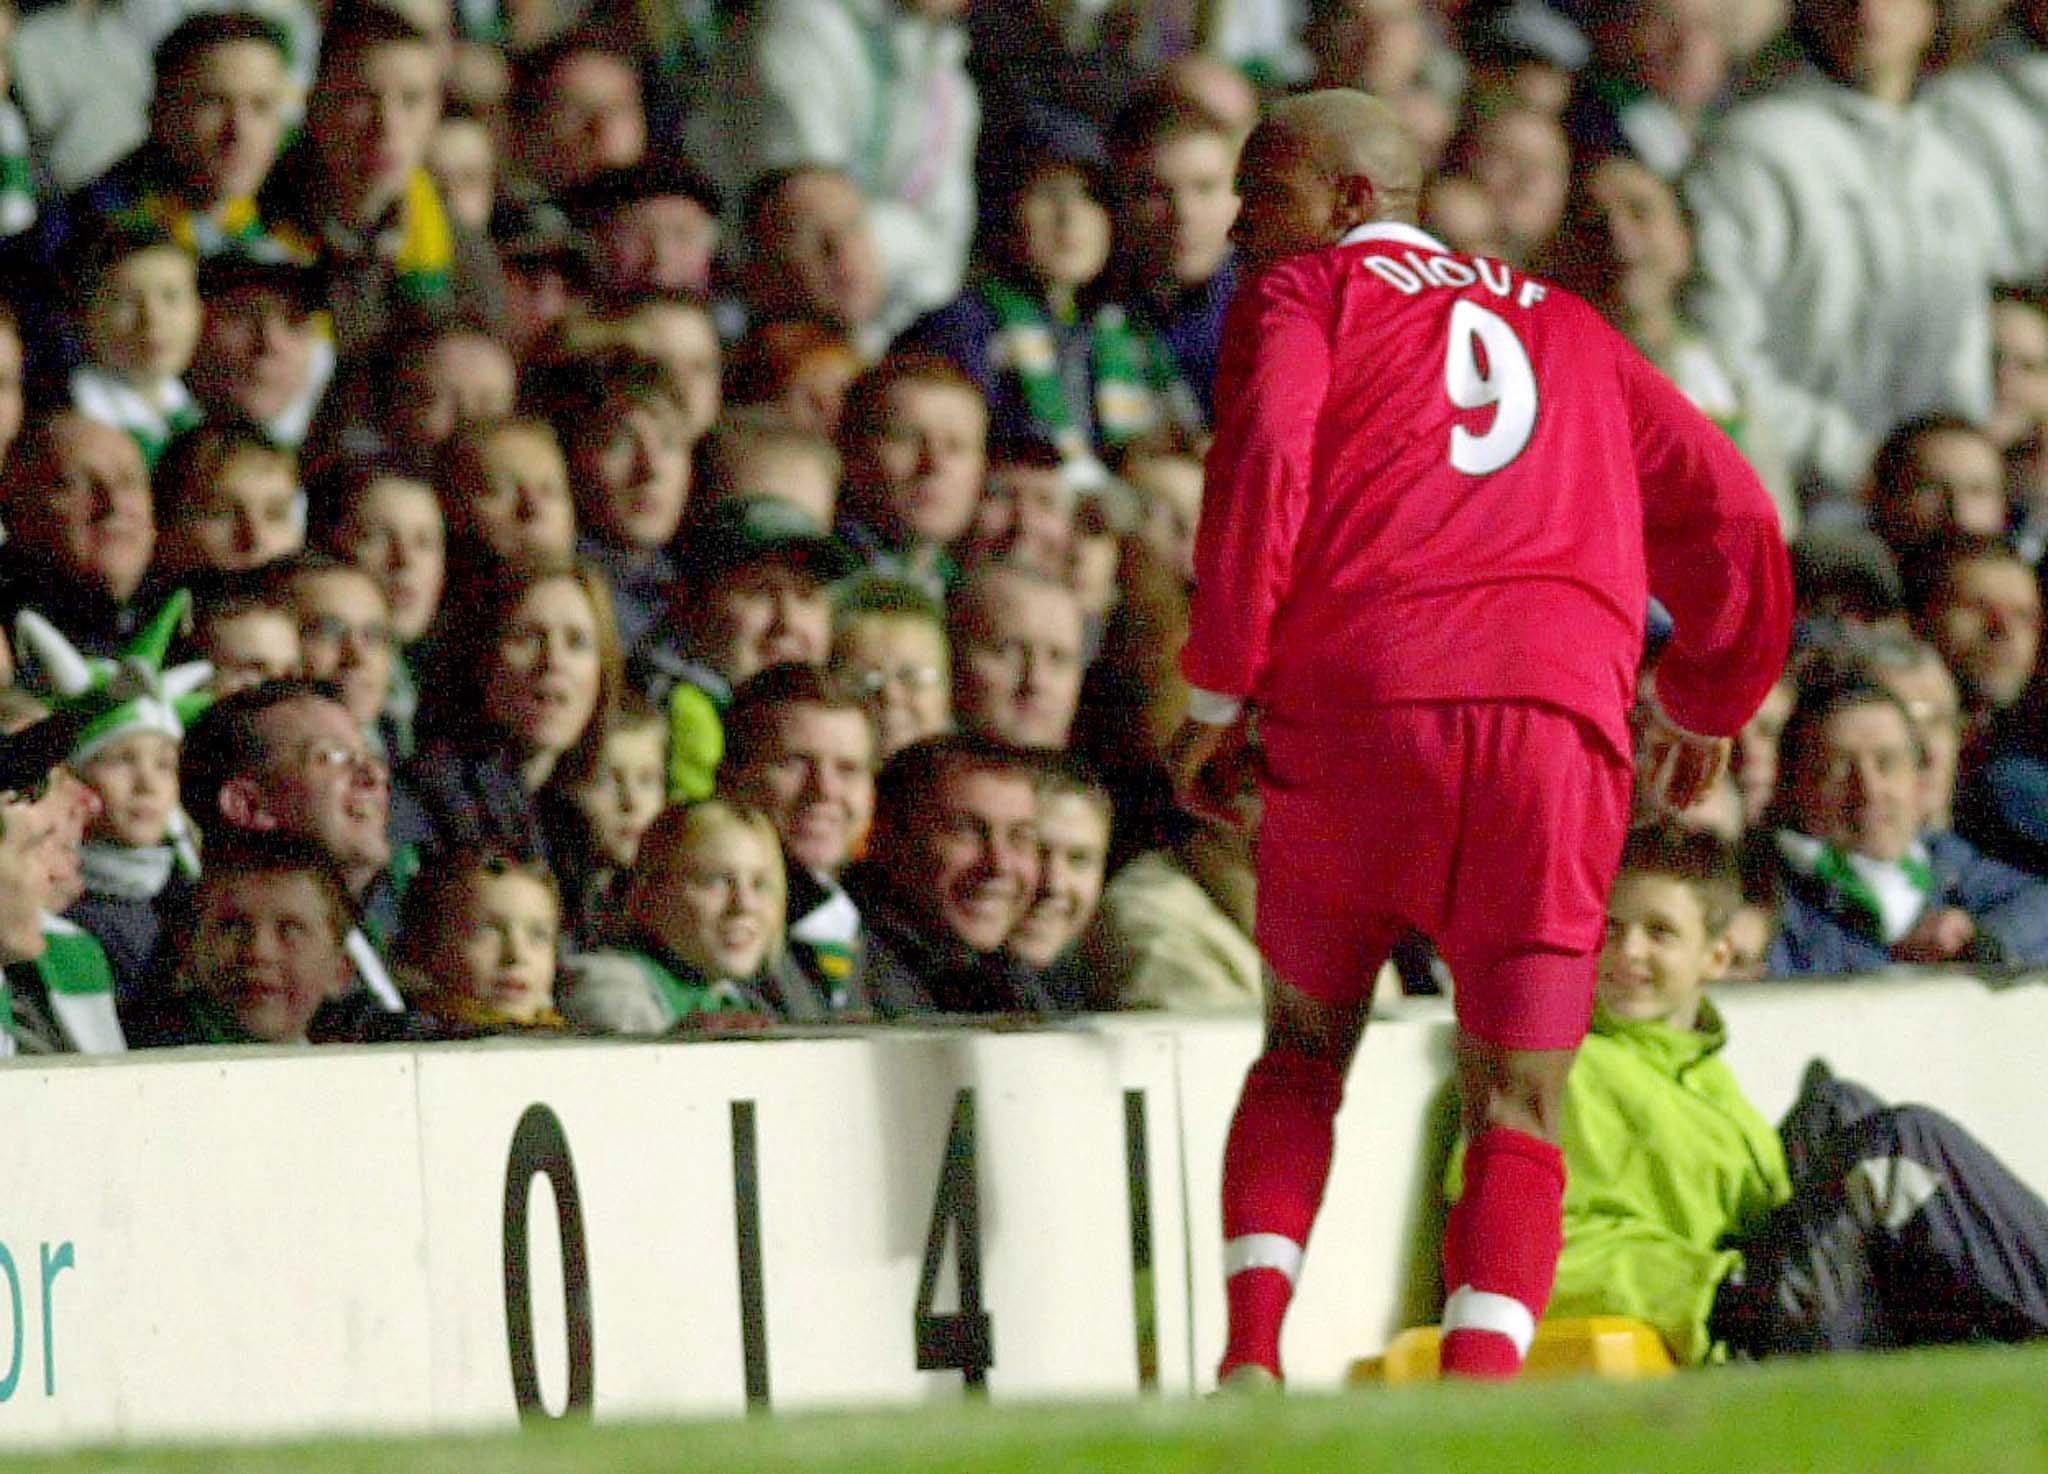 Yep, that's Diouf spitting at at Celtic fans